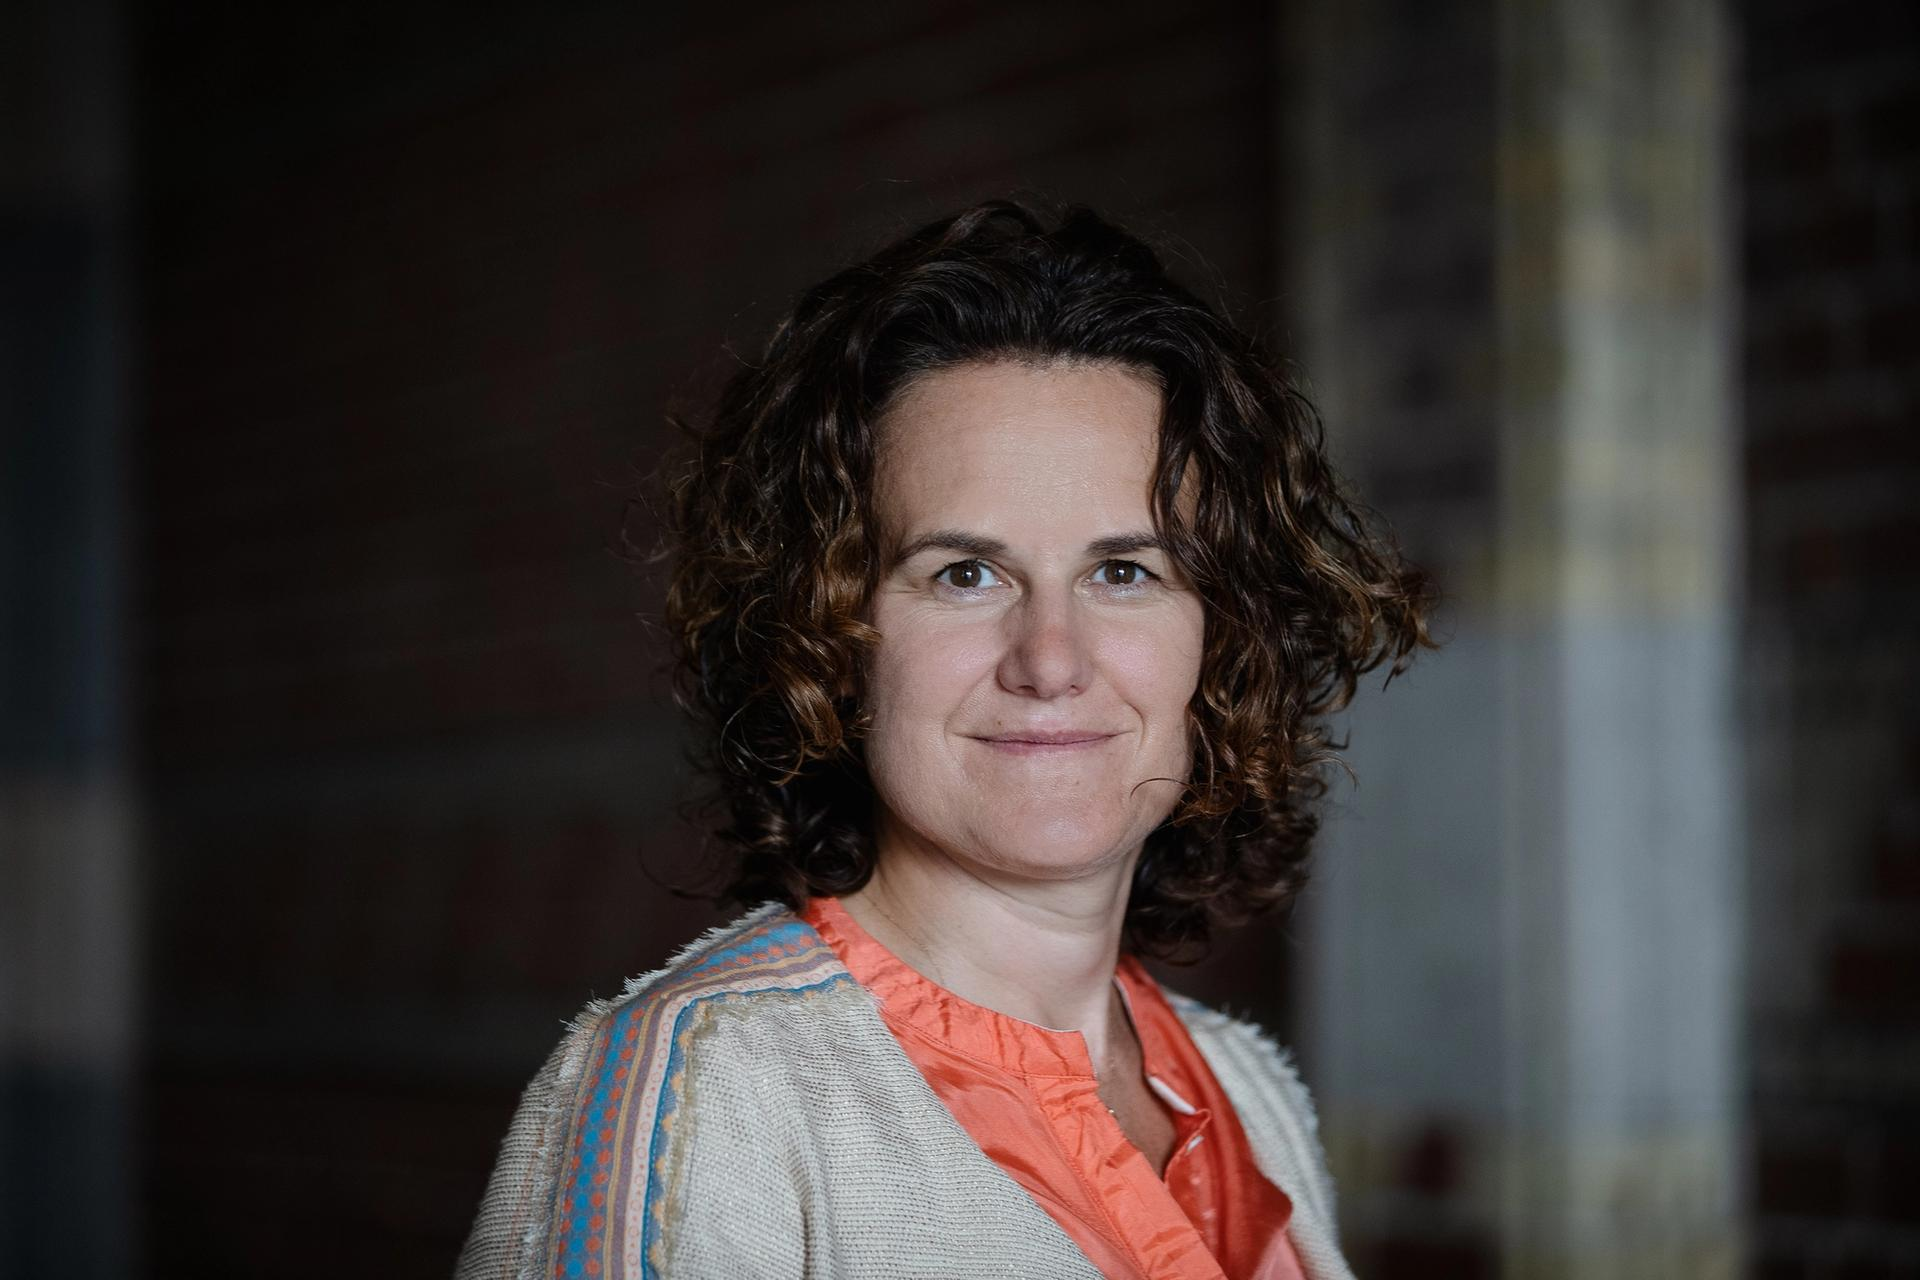 Tefaf's new managing director Charlotte van Leerdam is also the company's chief financial officer Courtesy of Tefaf